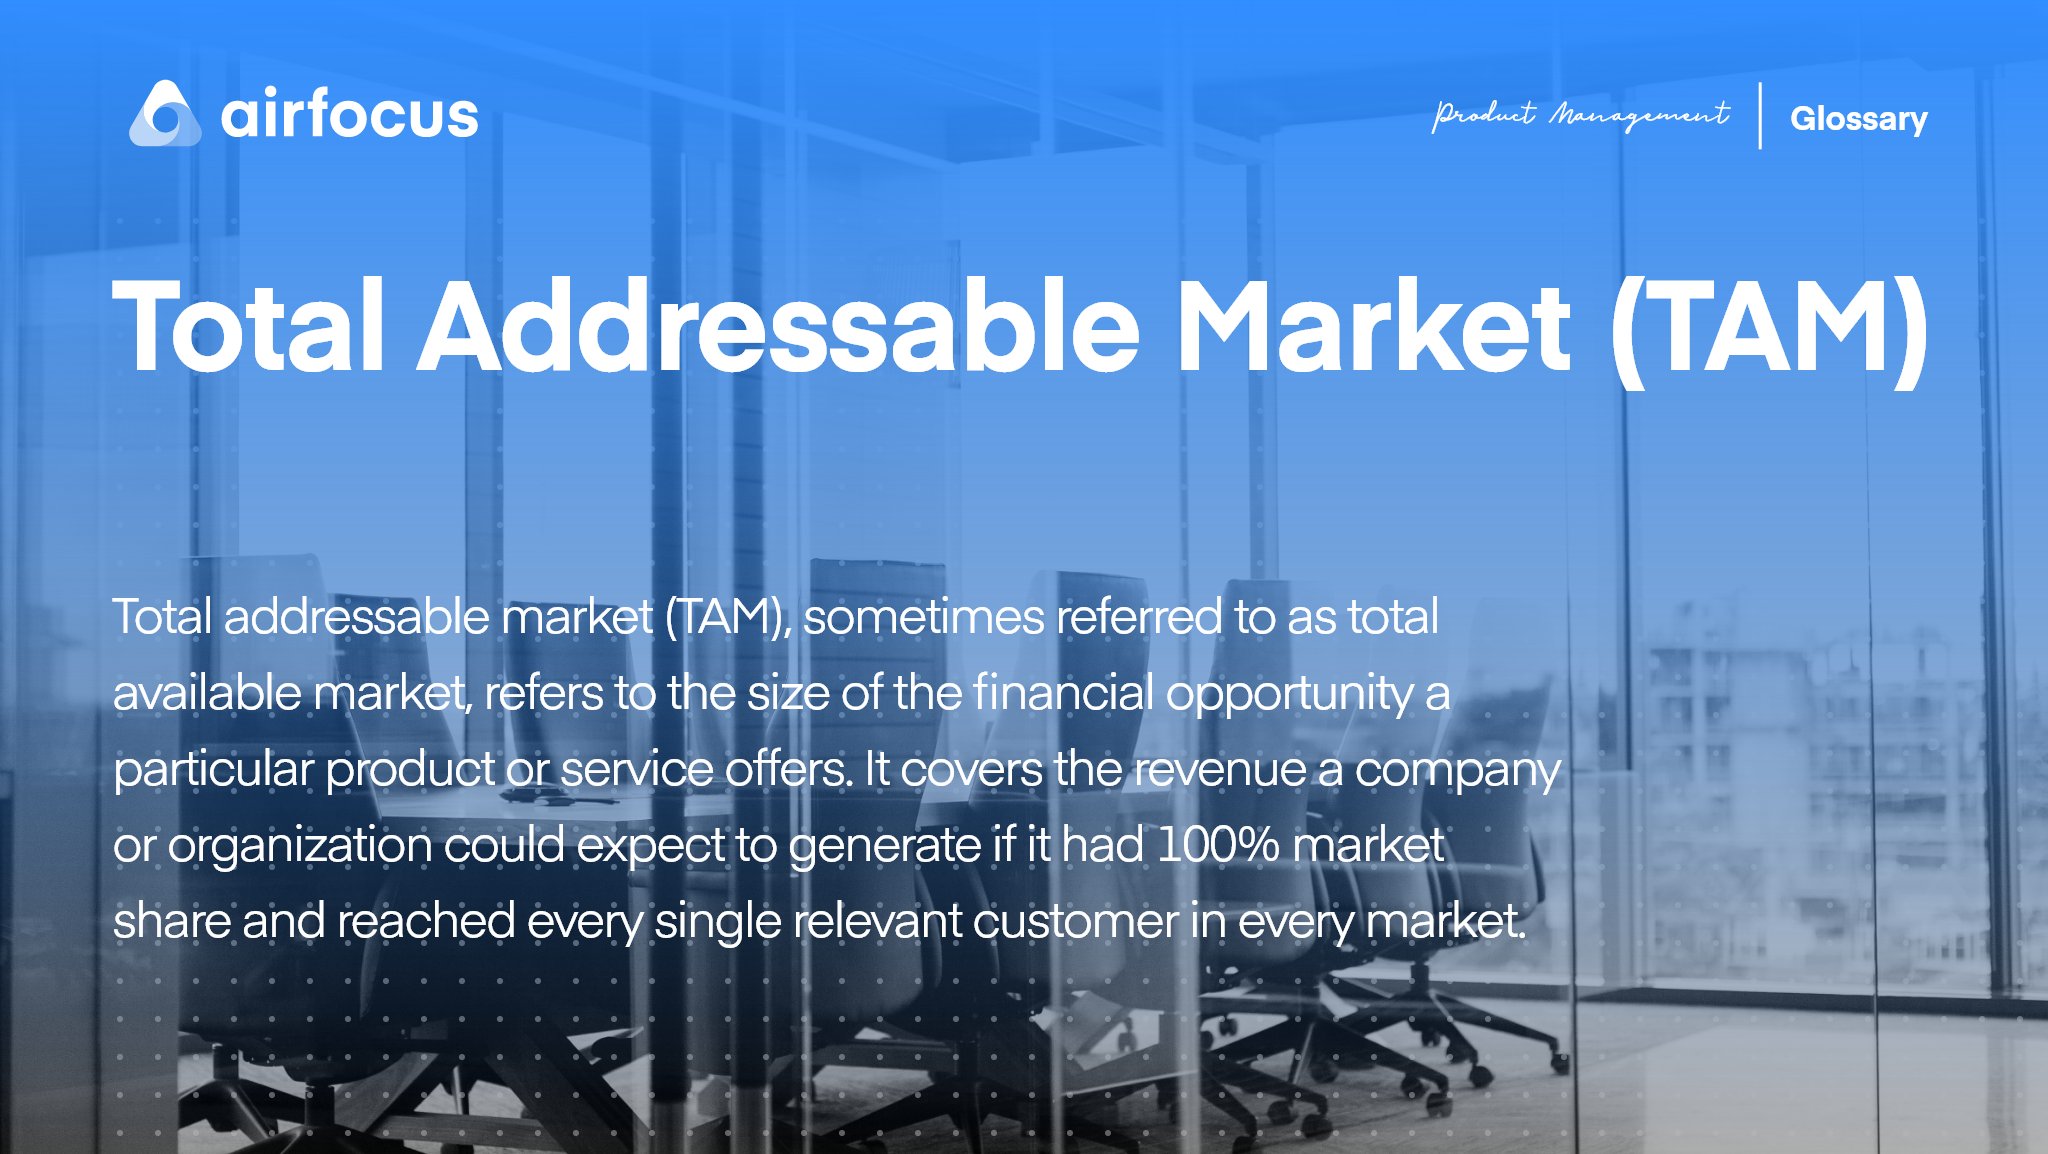 What Is Total Addressable Market (TAM)